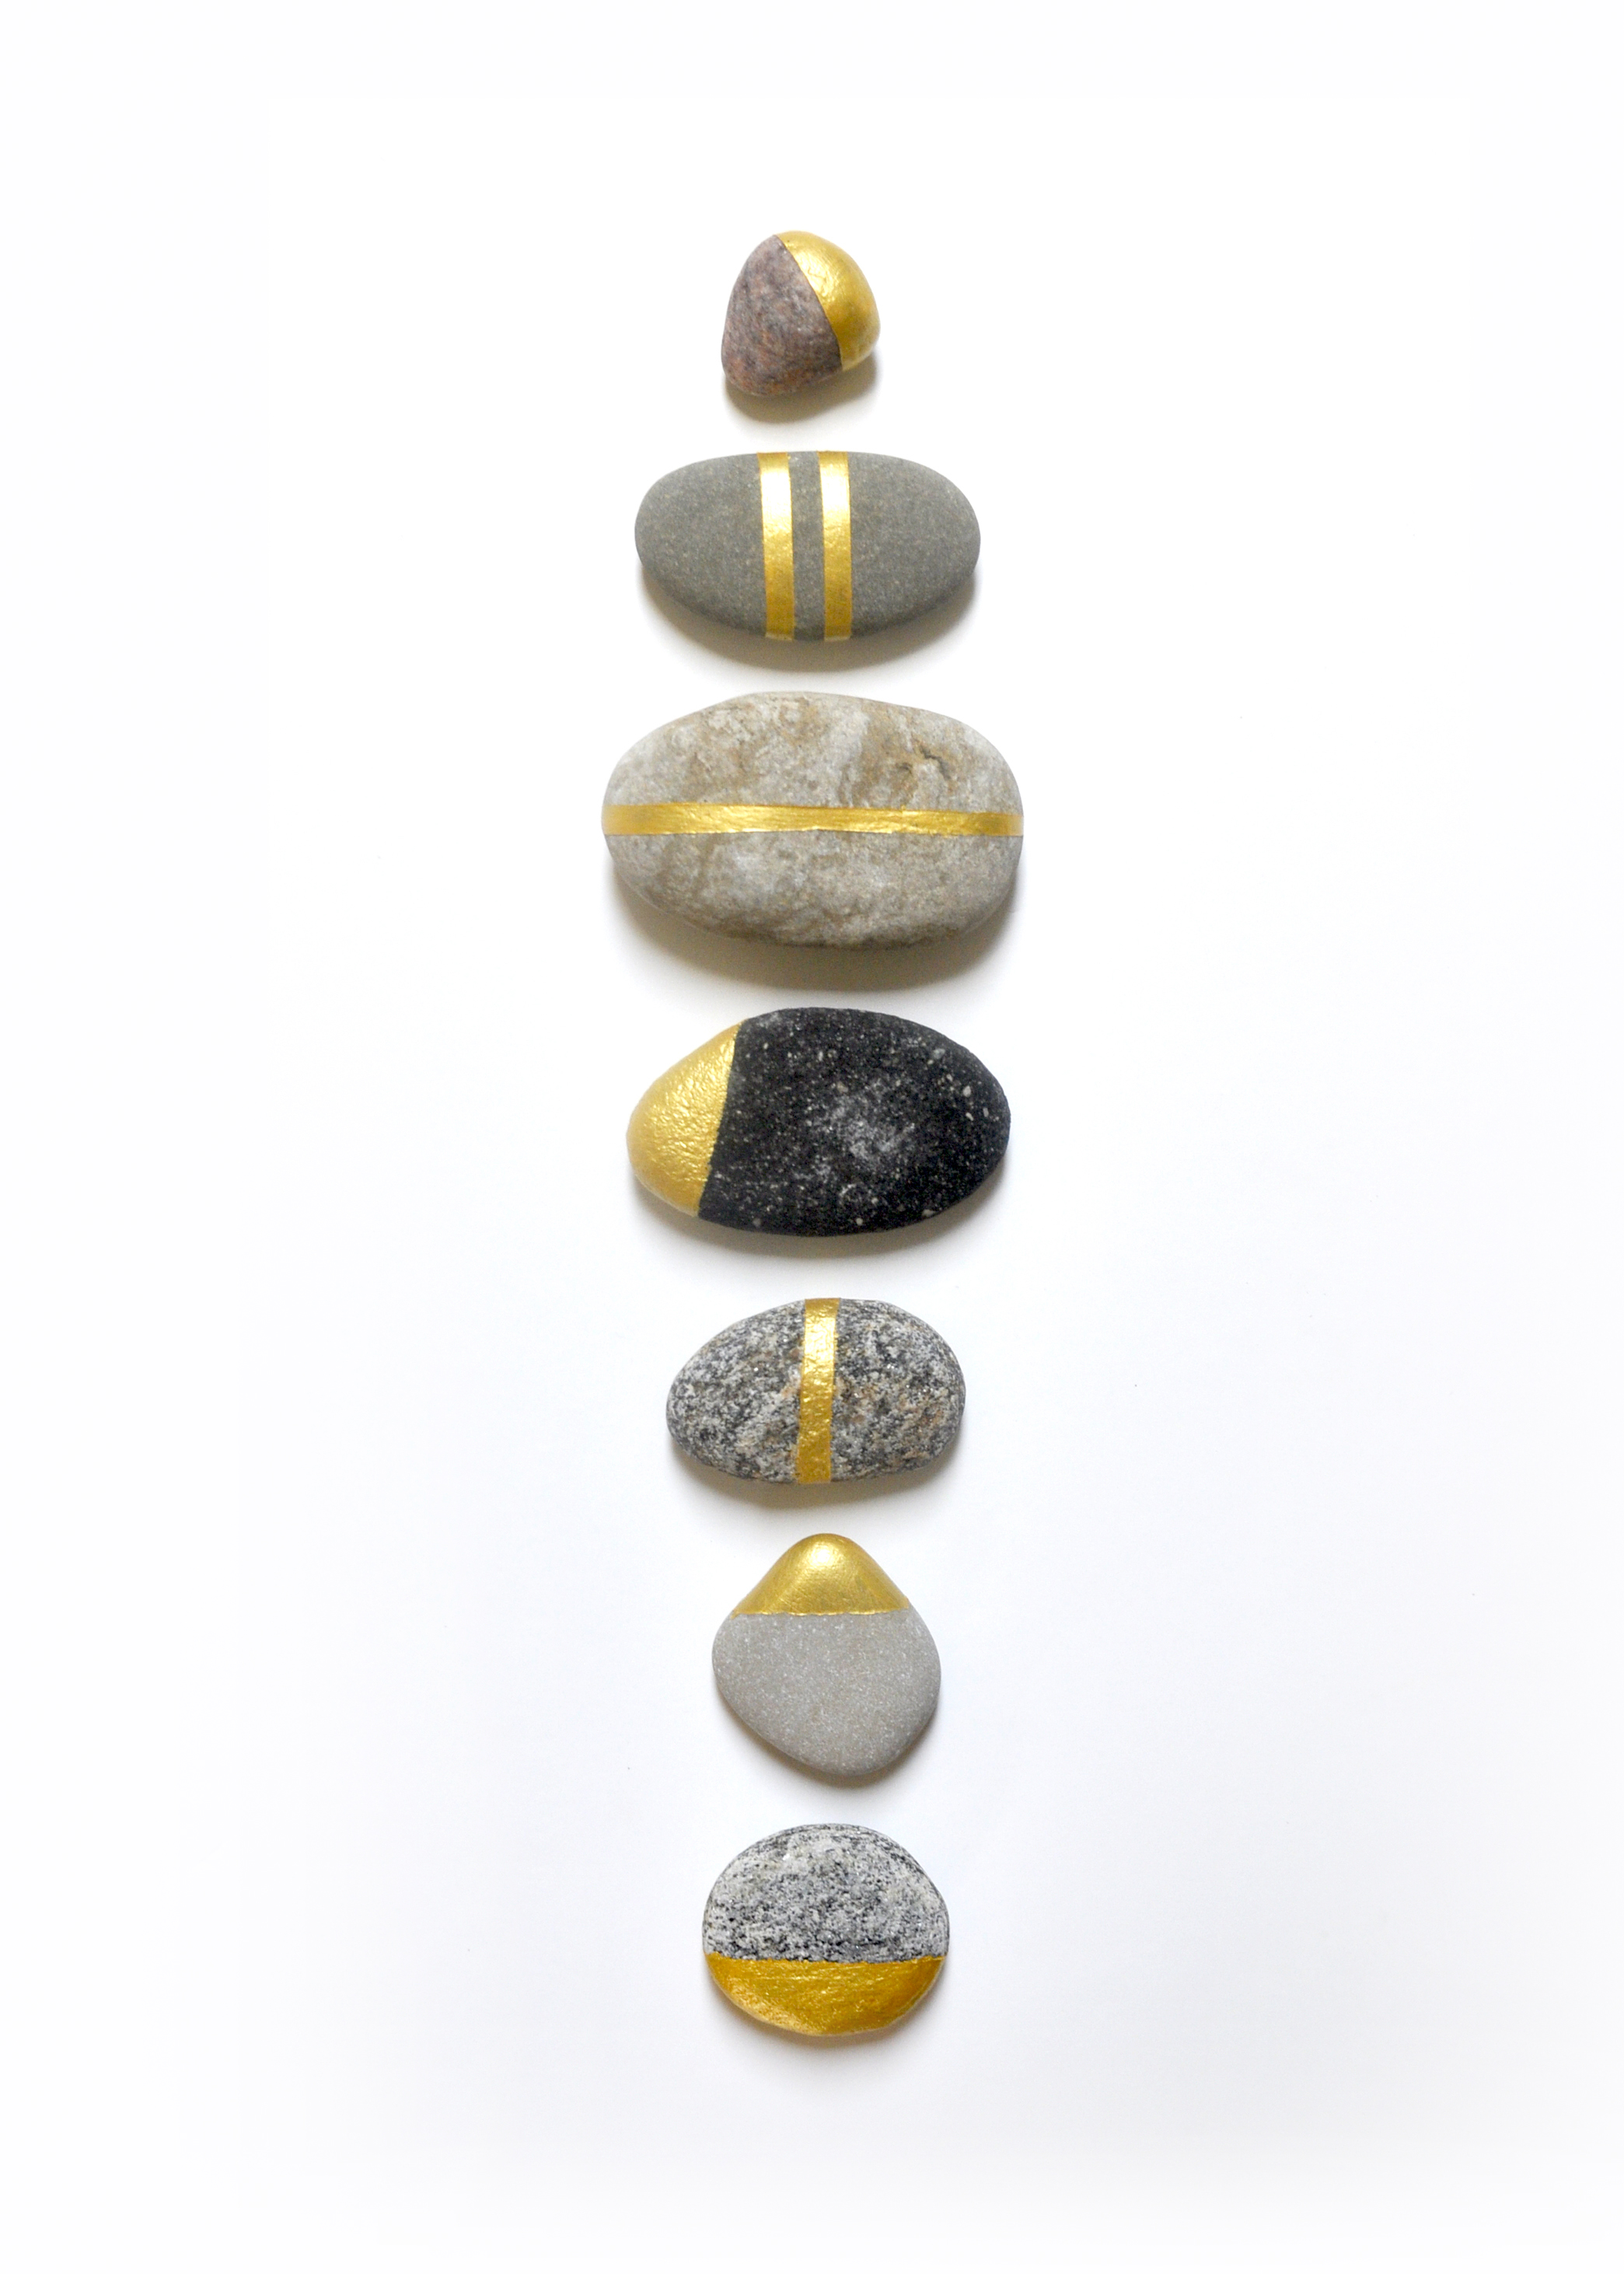 Gold painted rocks by Swell Made Co.